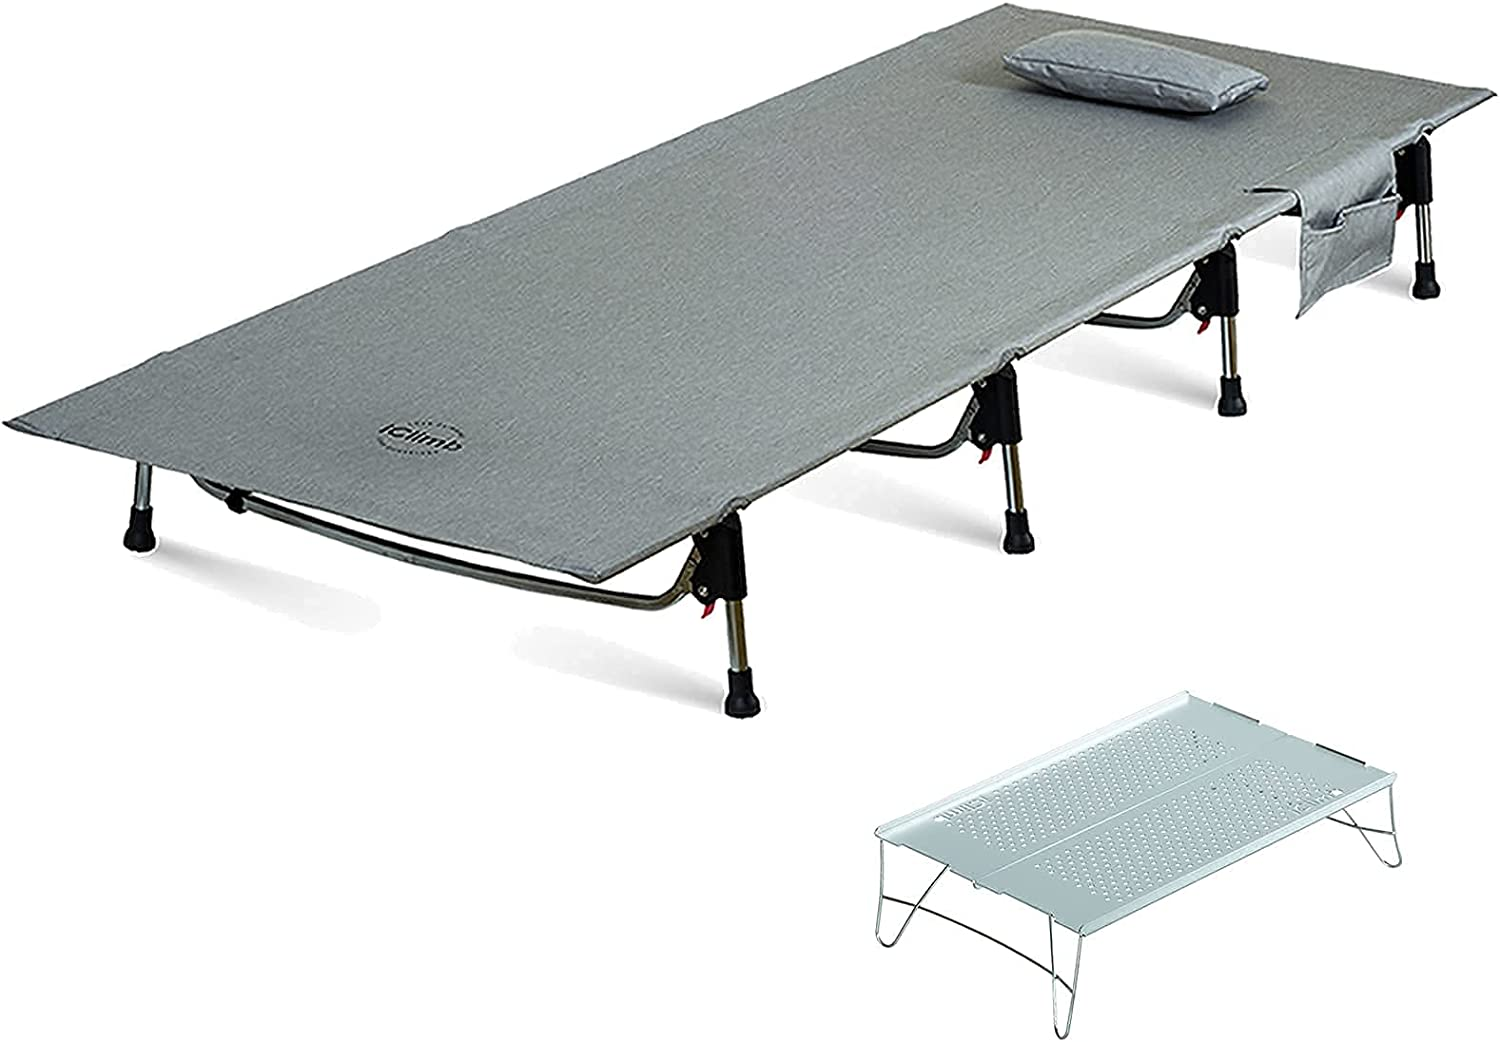 iClimb 1 Super New products world's highest Fixed price for sale quality popular Easy Assemble Cot Table Folding Mini and B Solo